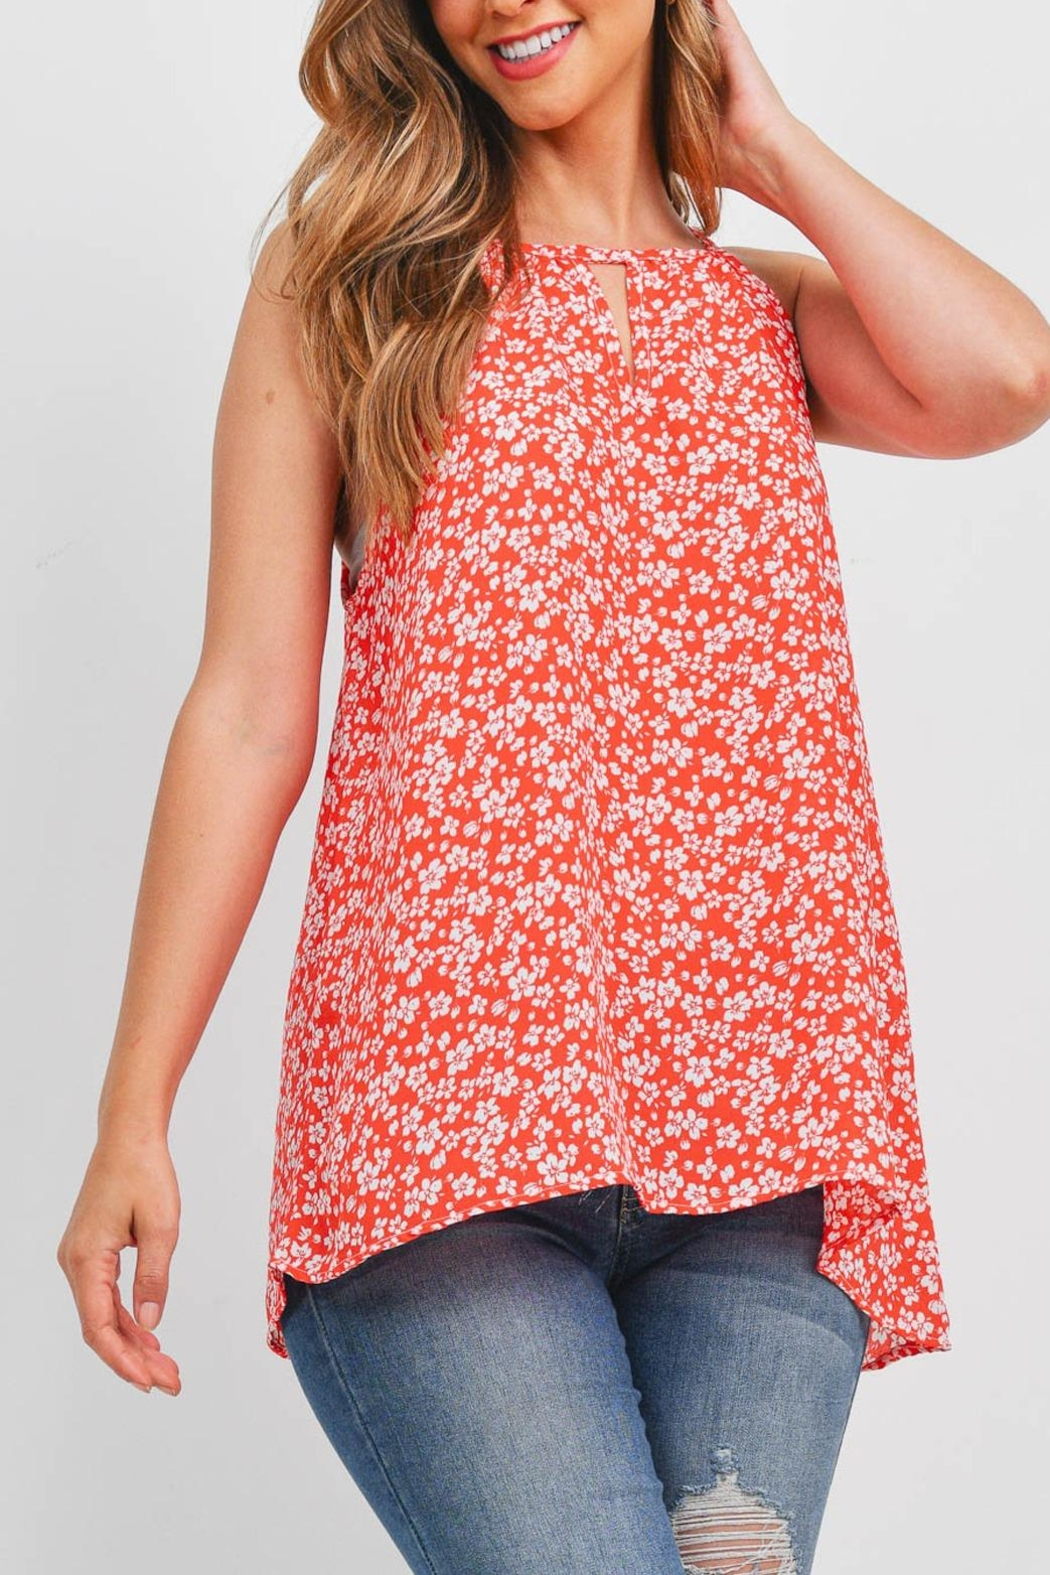 Riah Fashion Sleeveless-Keyhole-Floral-Top - Front Cropped Image